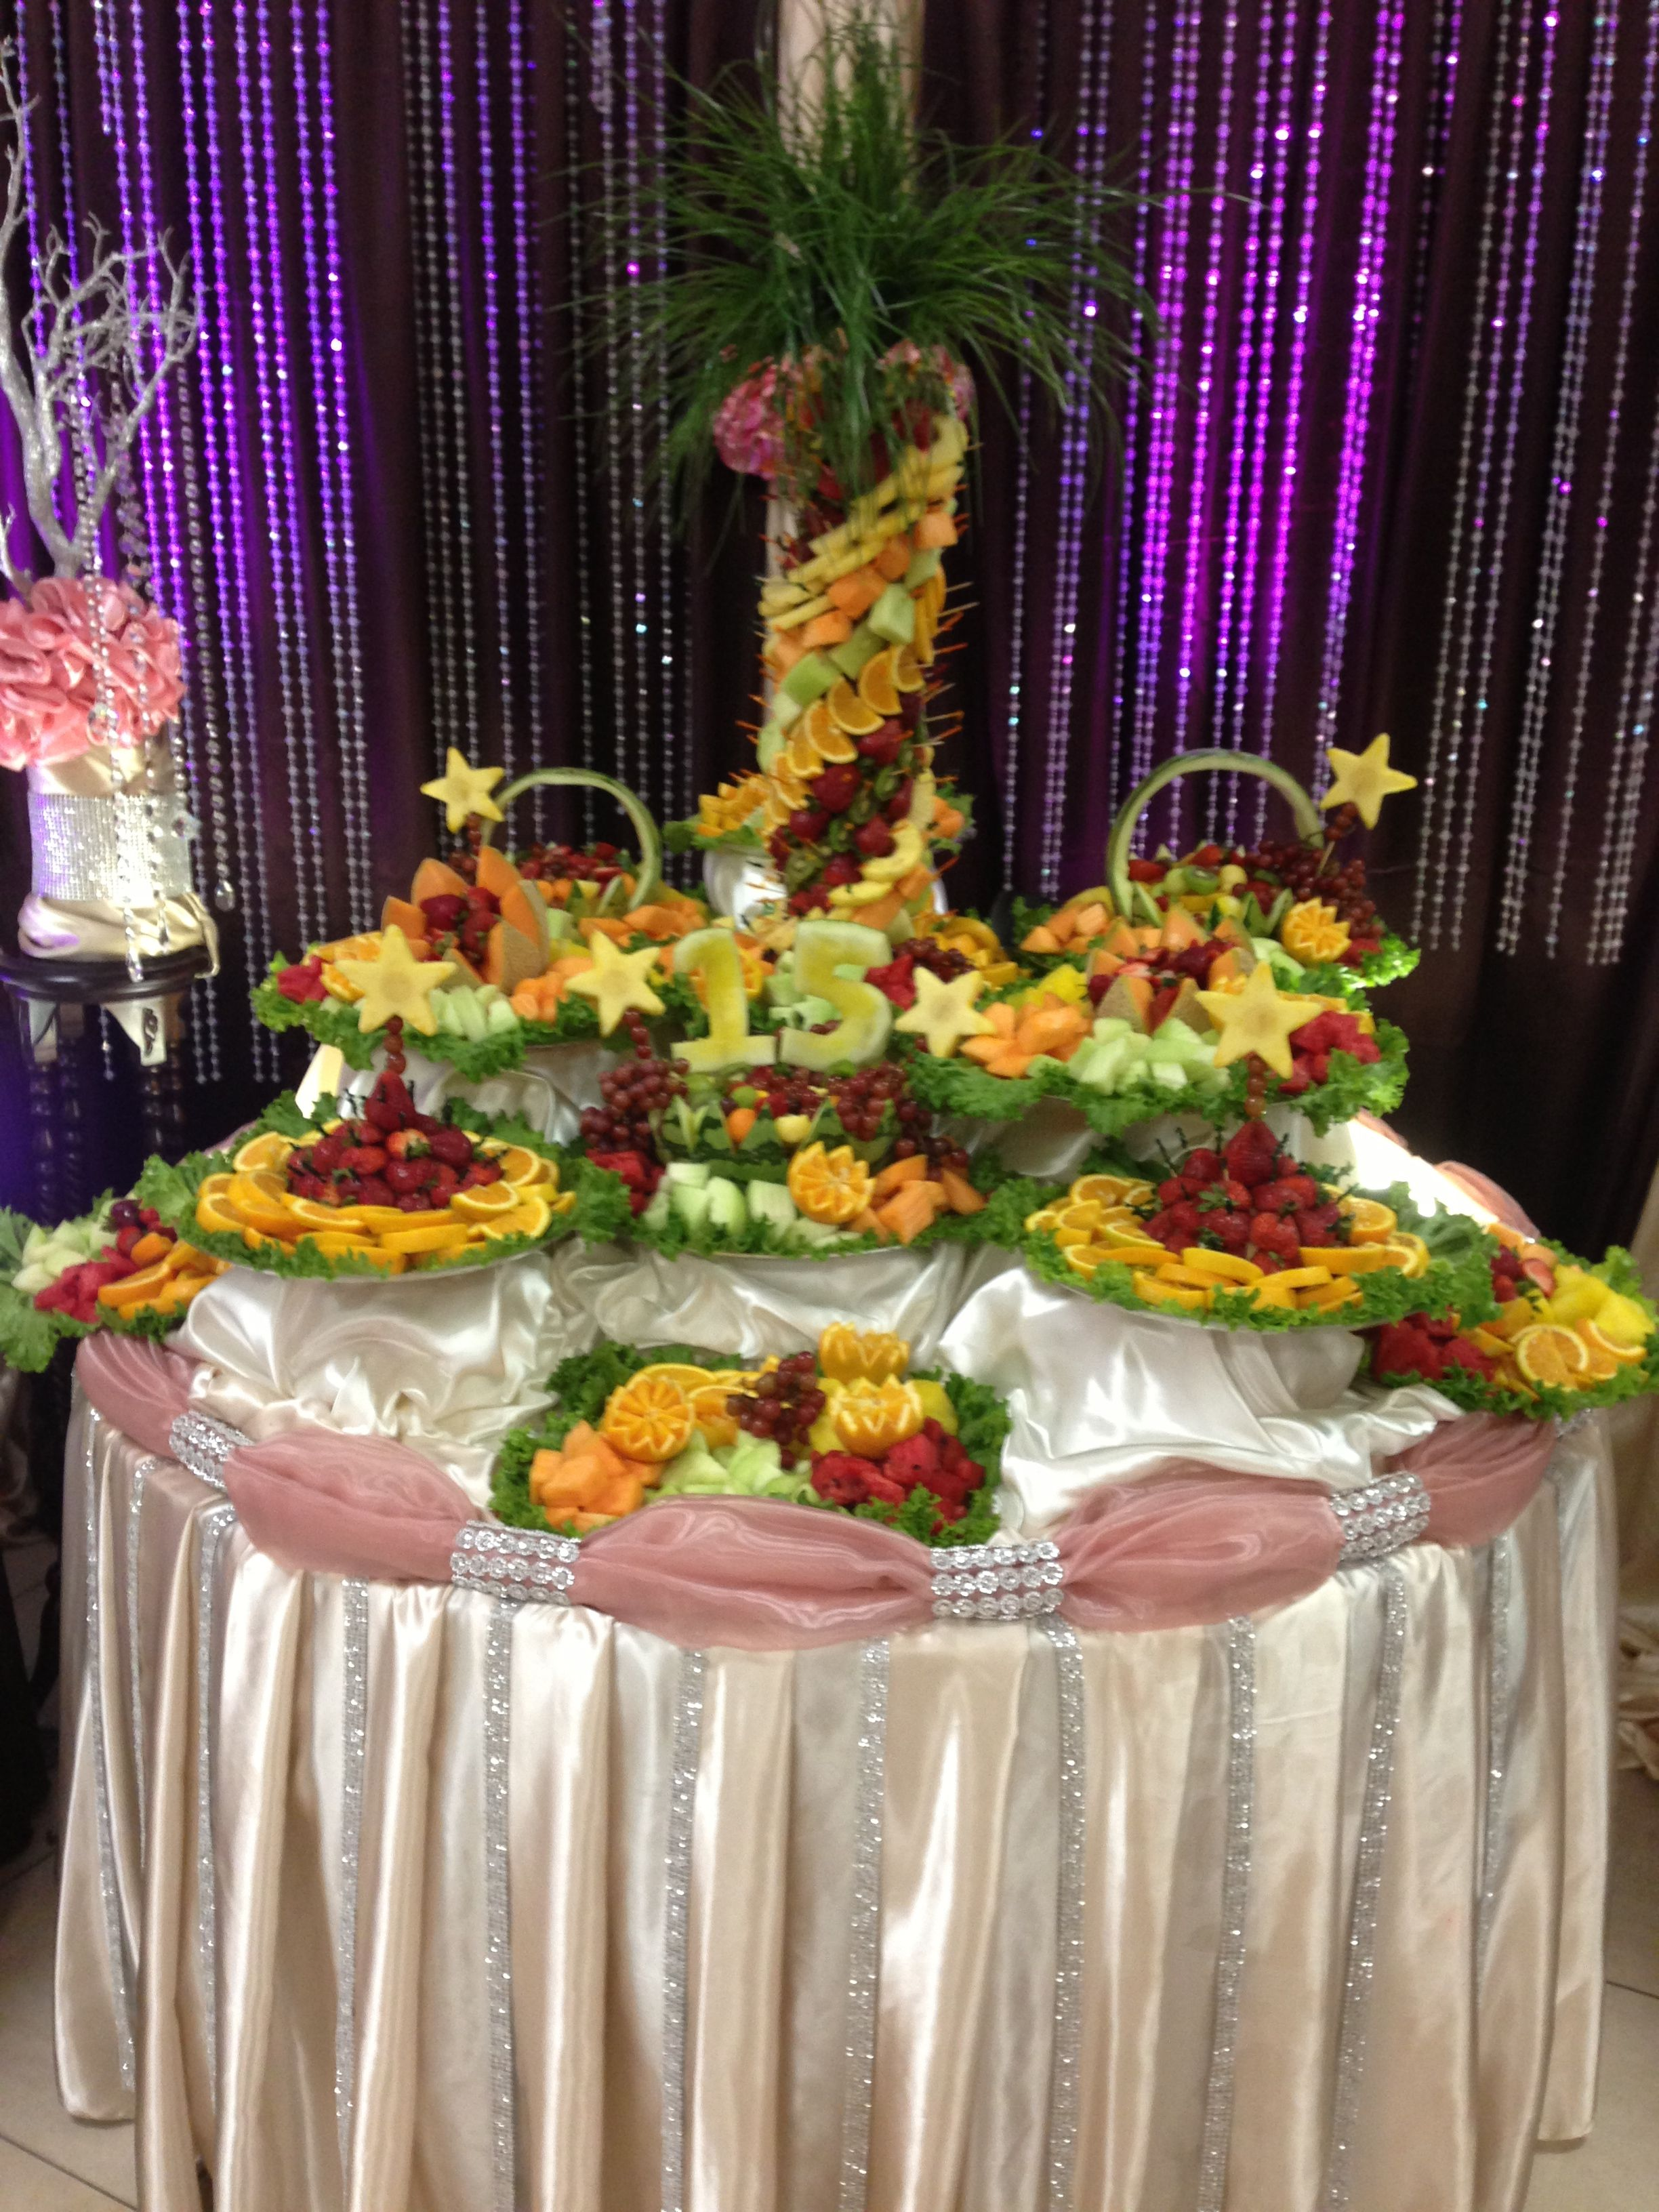 15 Party Fruit Table Www Facebook Com